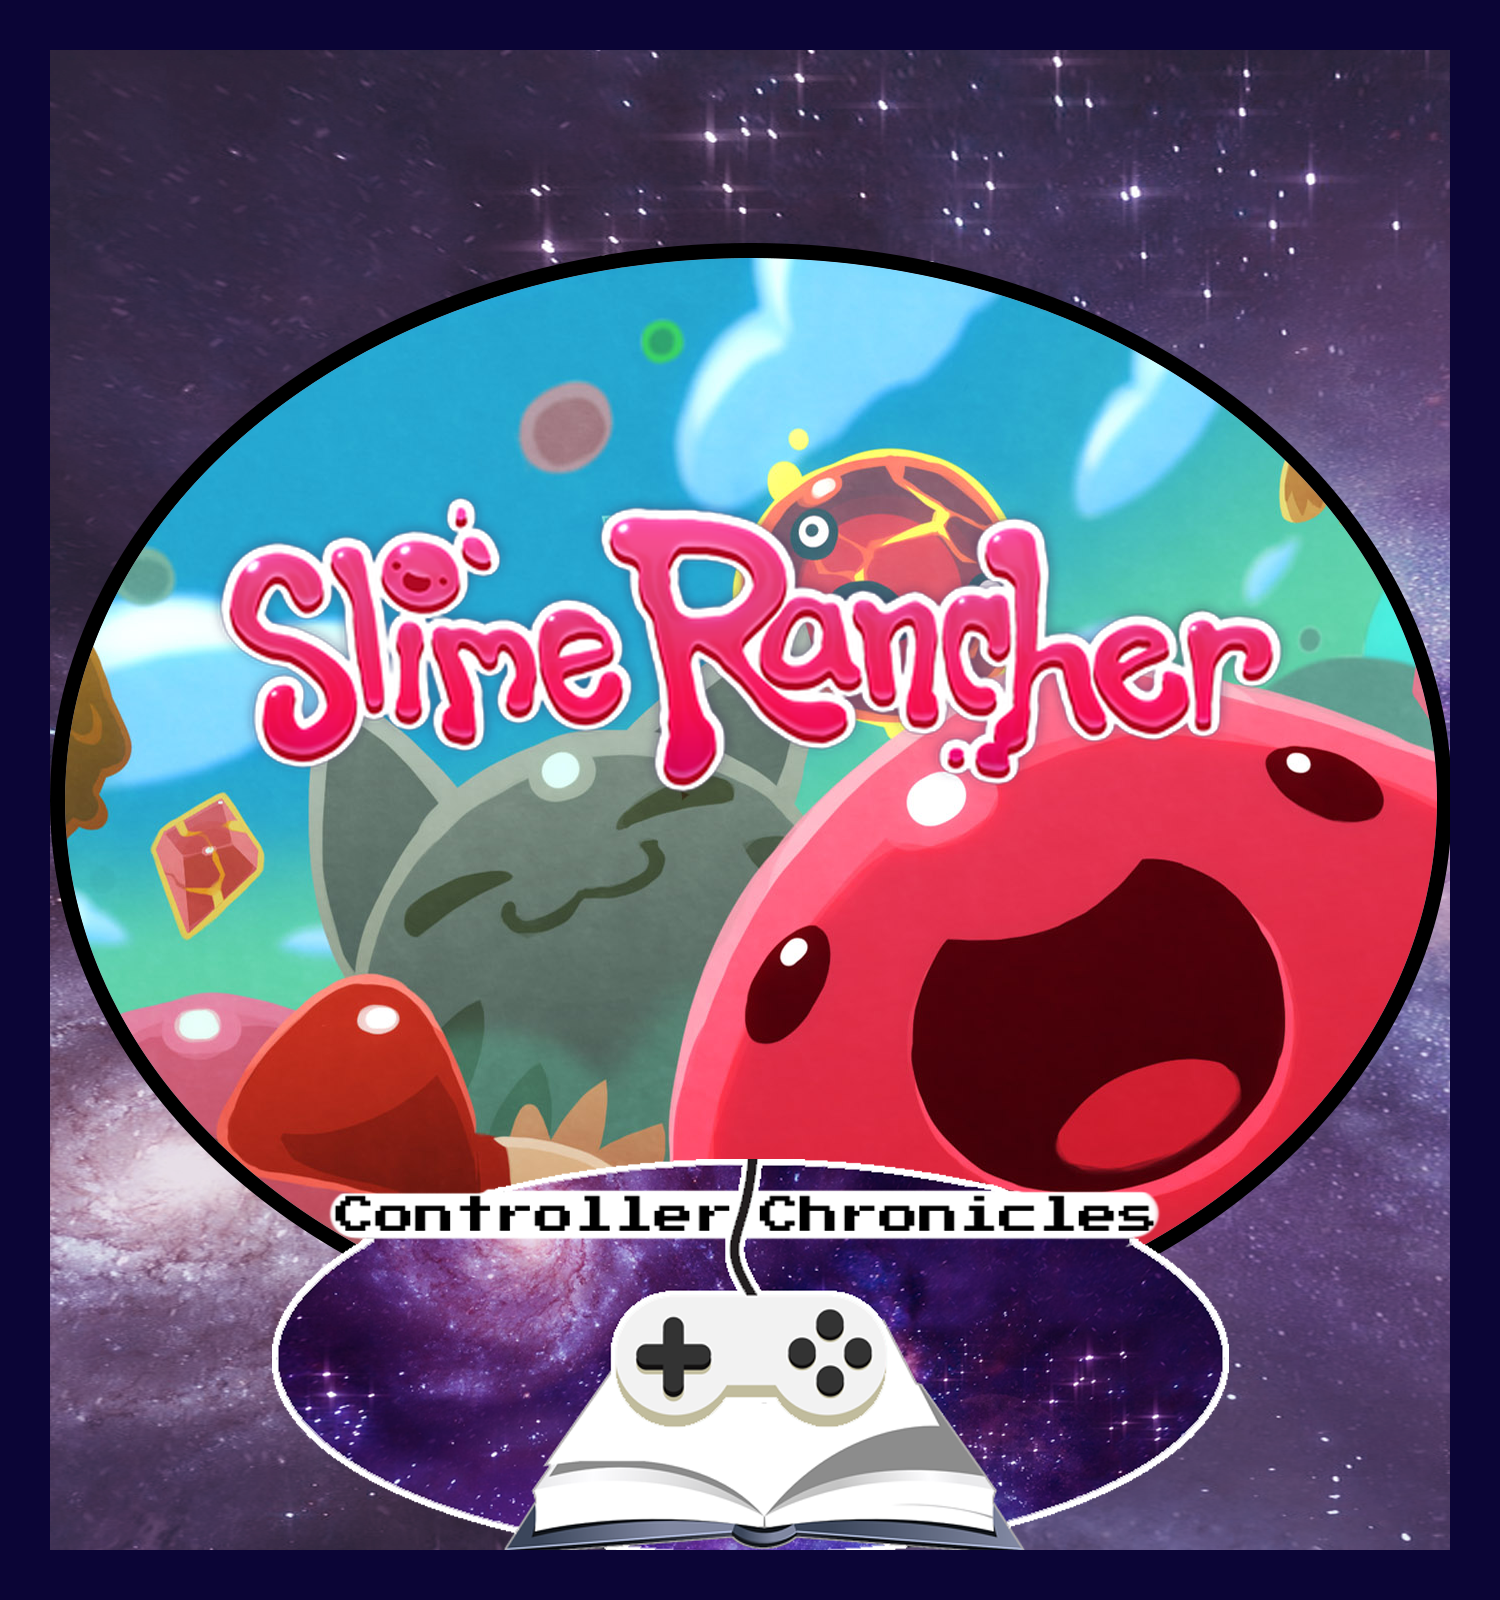 Slime Rancher Big Trouble Little Story Controller Chronicles